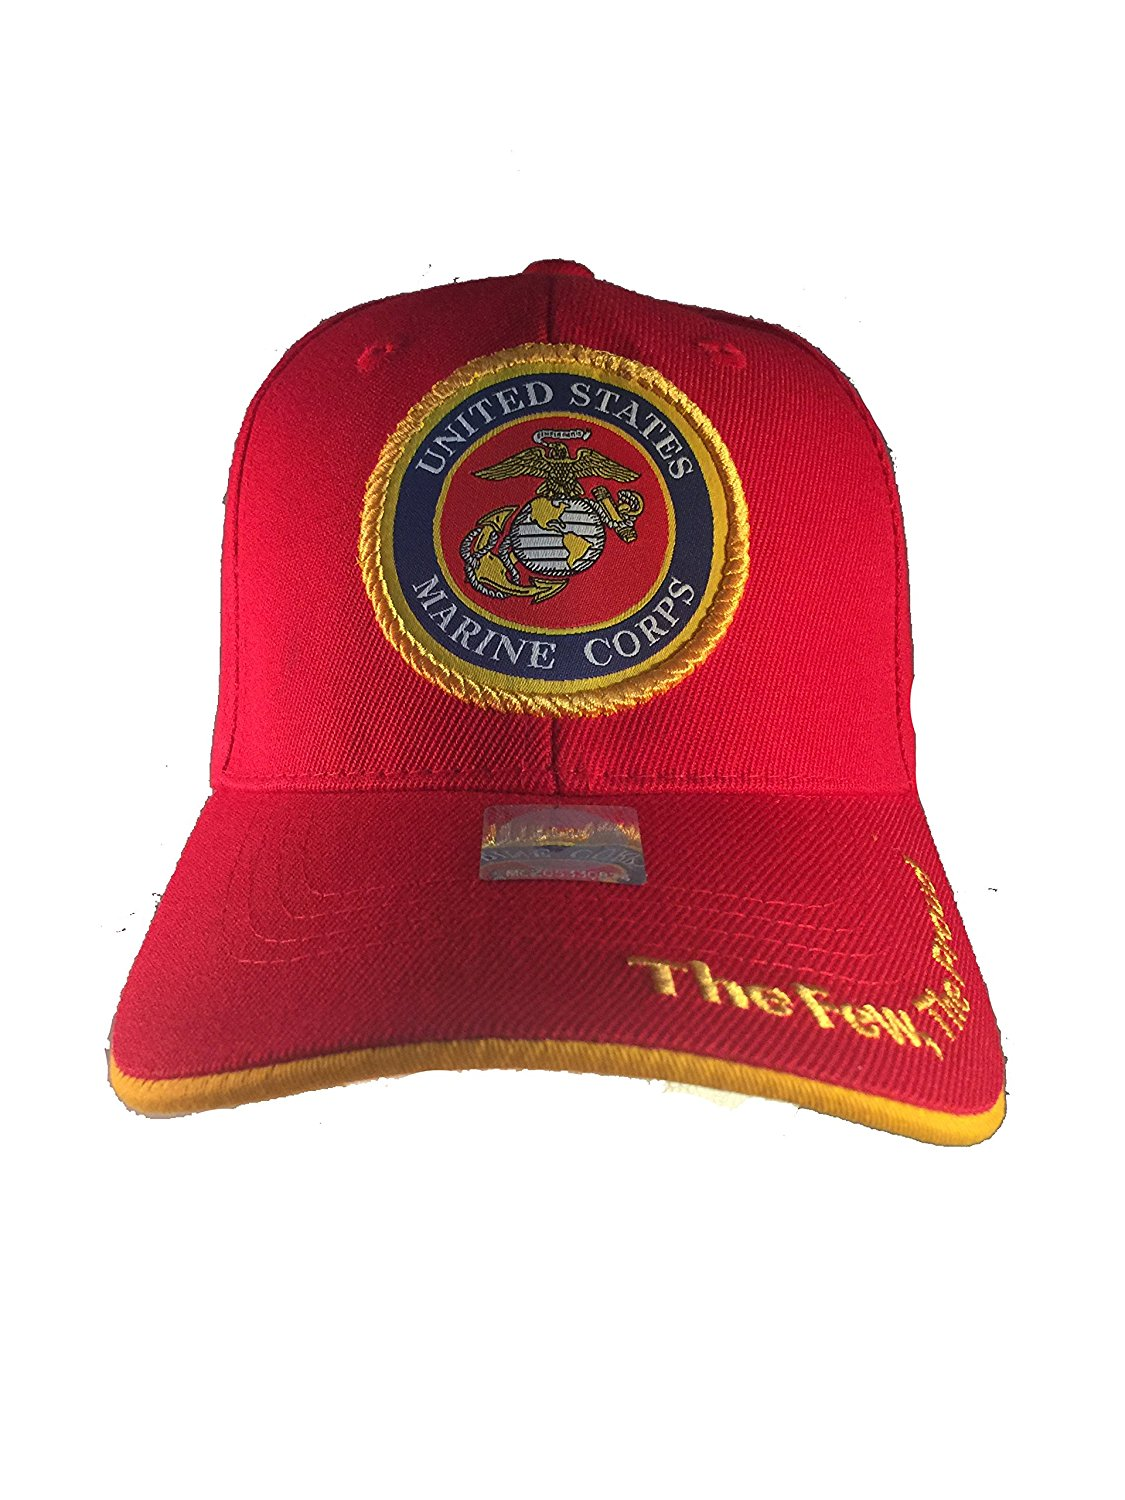 50a716762a2c2 Get Quotations · EZ Gifts Officially Licensed US Marine Corps USMC Marines  USMC Military Baseball Cap Hat NEW